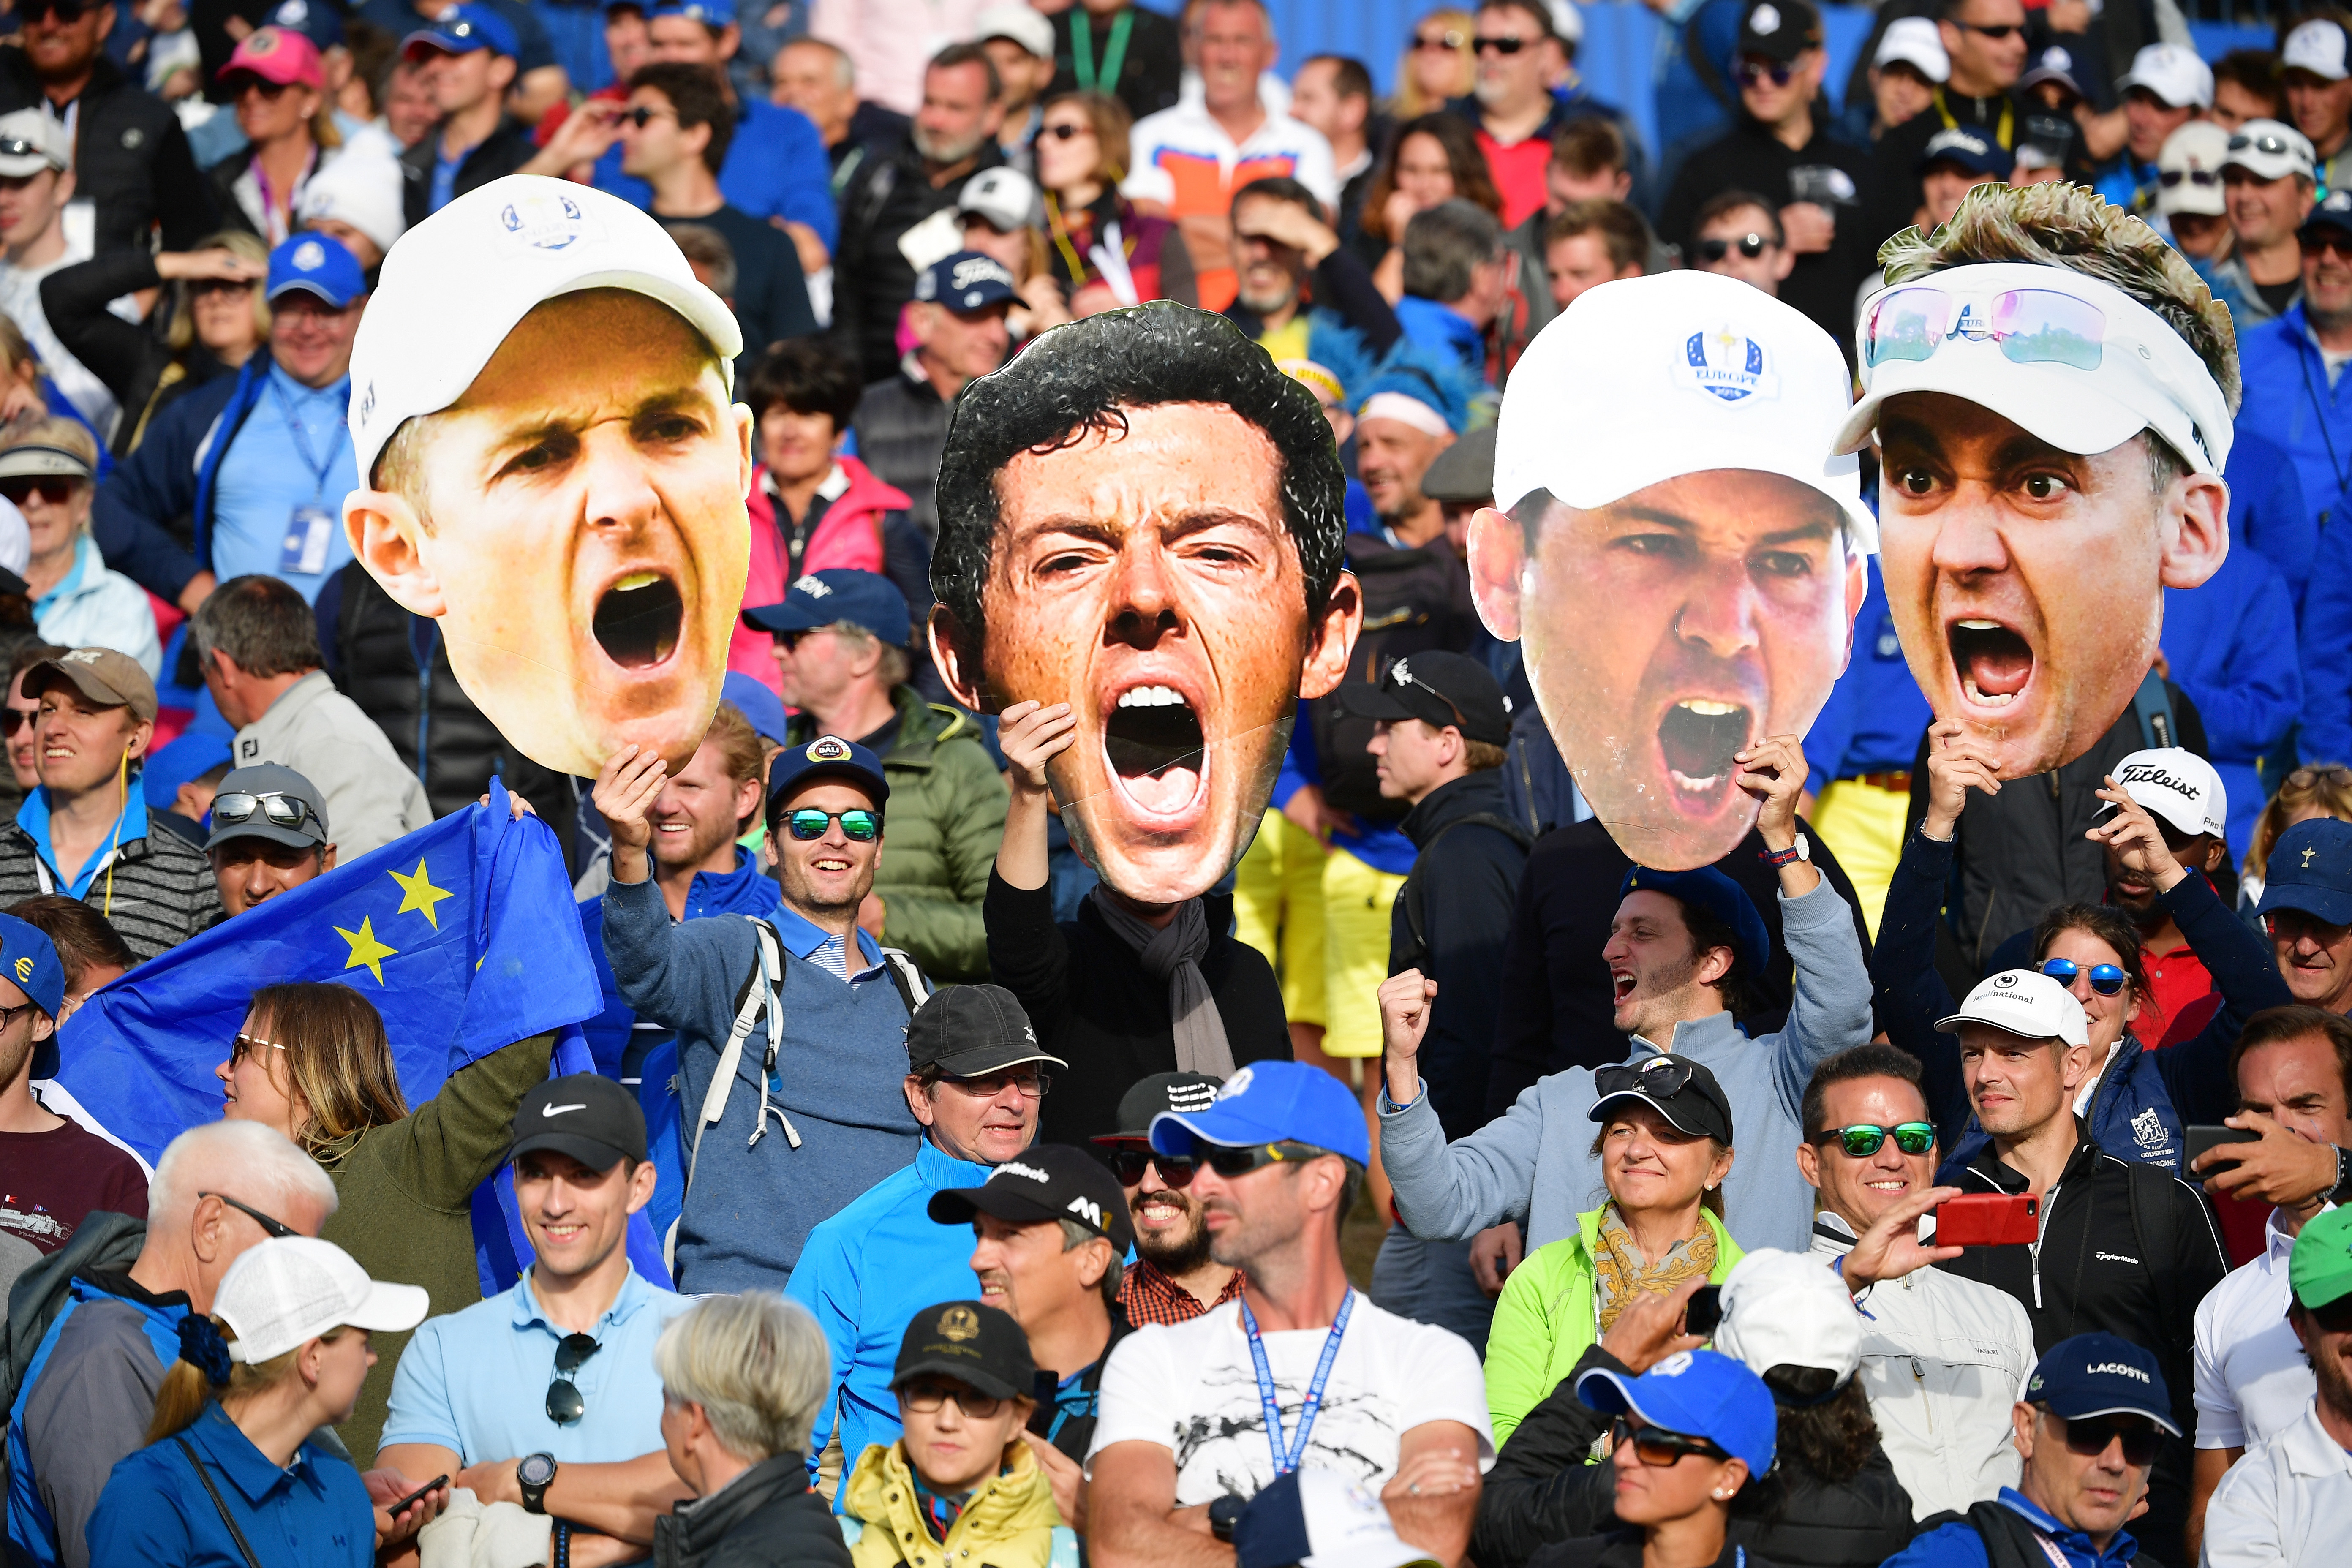 PARIS, FRANCE - SEPTEMBER 30: European fans celebrate during singles matches of the 2018 Ryder Cup at Le Golf National on September 30, 2018 in Paris, France. (Photo by Stuart Franklin/Getty Images)